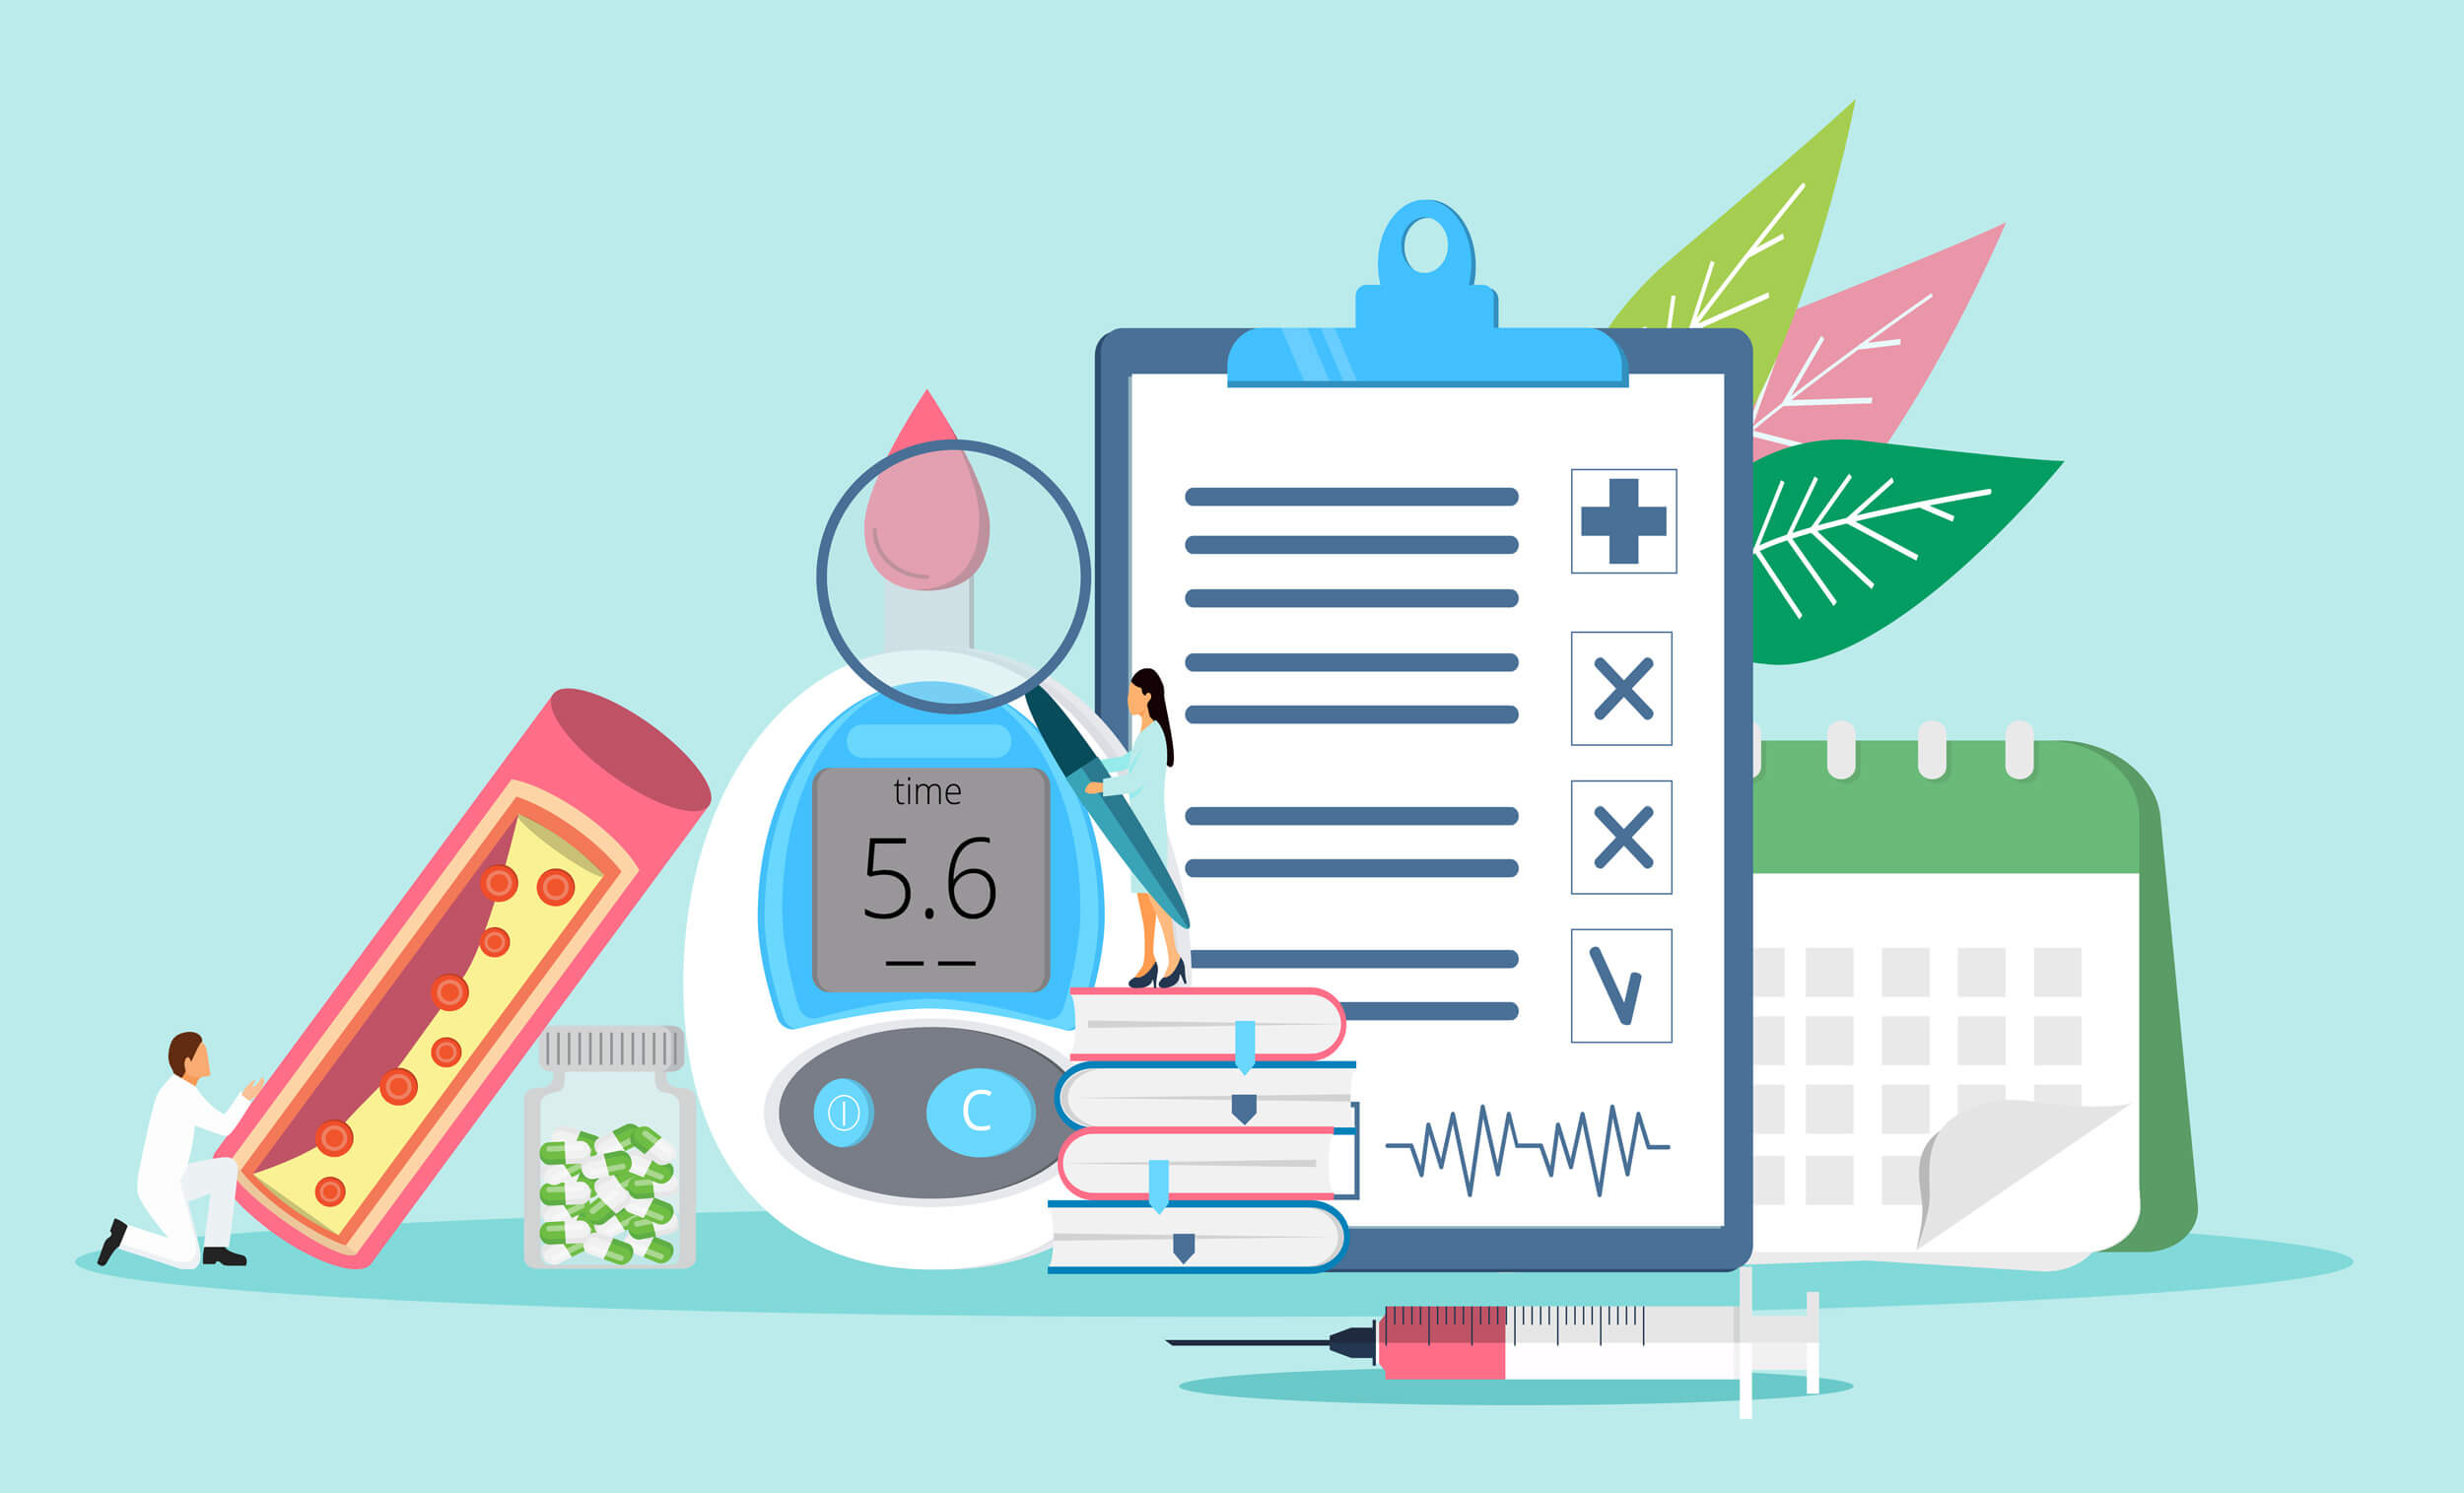 Can I prevent diabetes if I have prediabetes